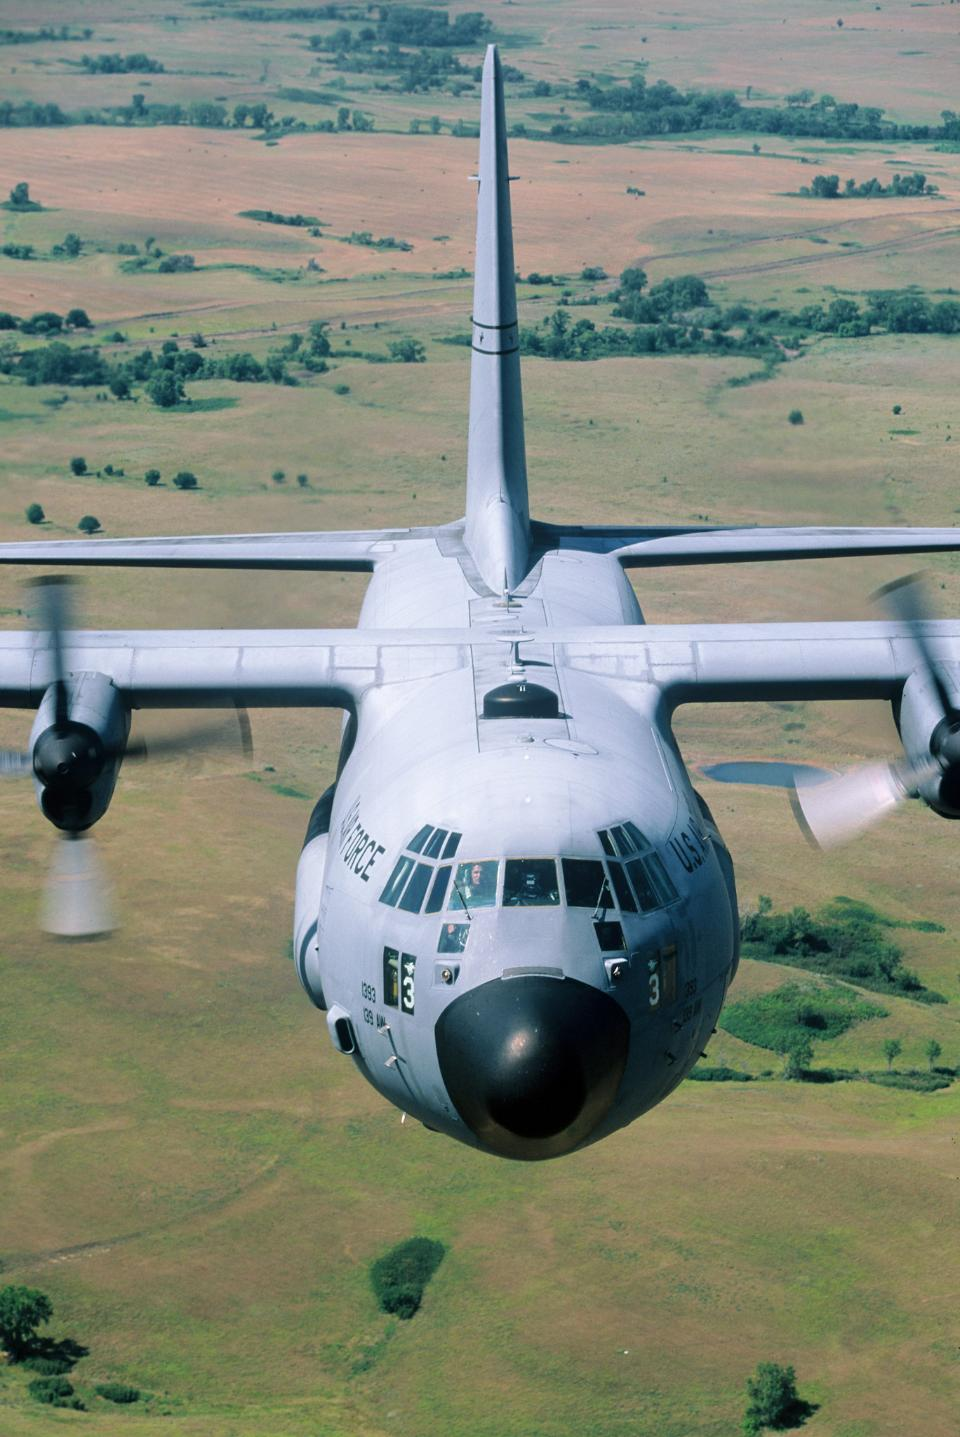 C-130 close up flying clear sky